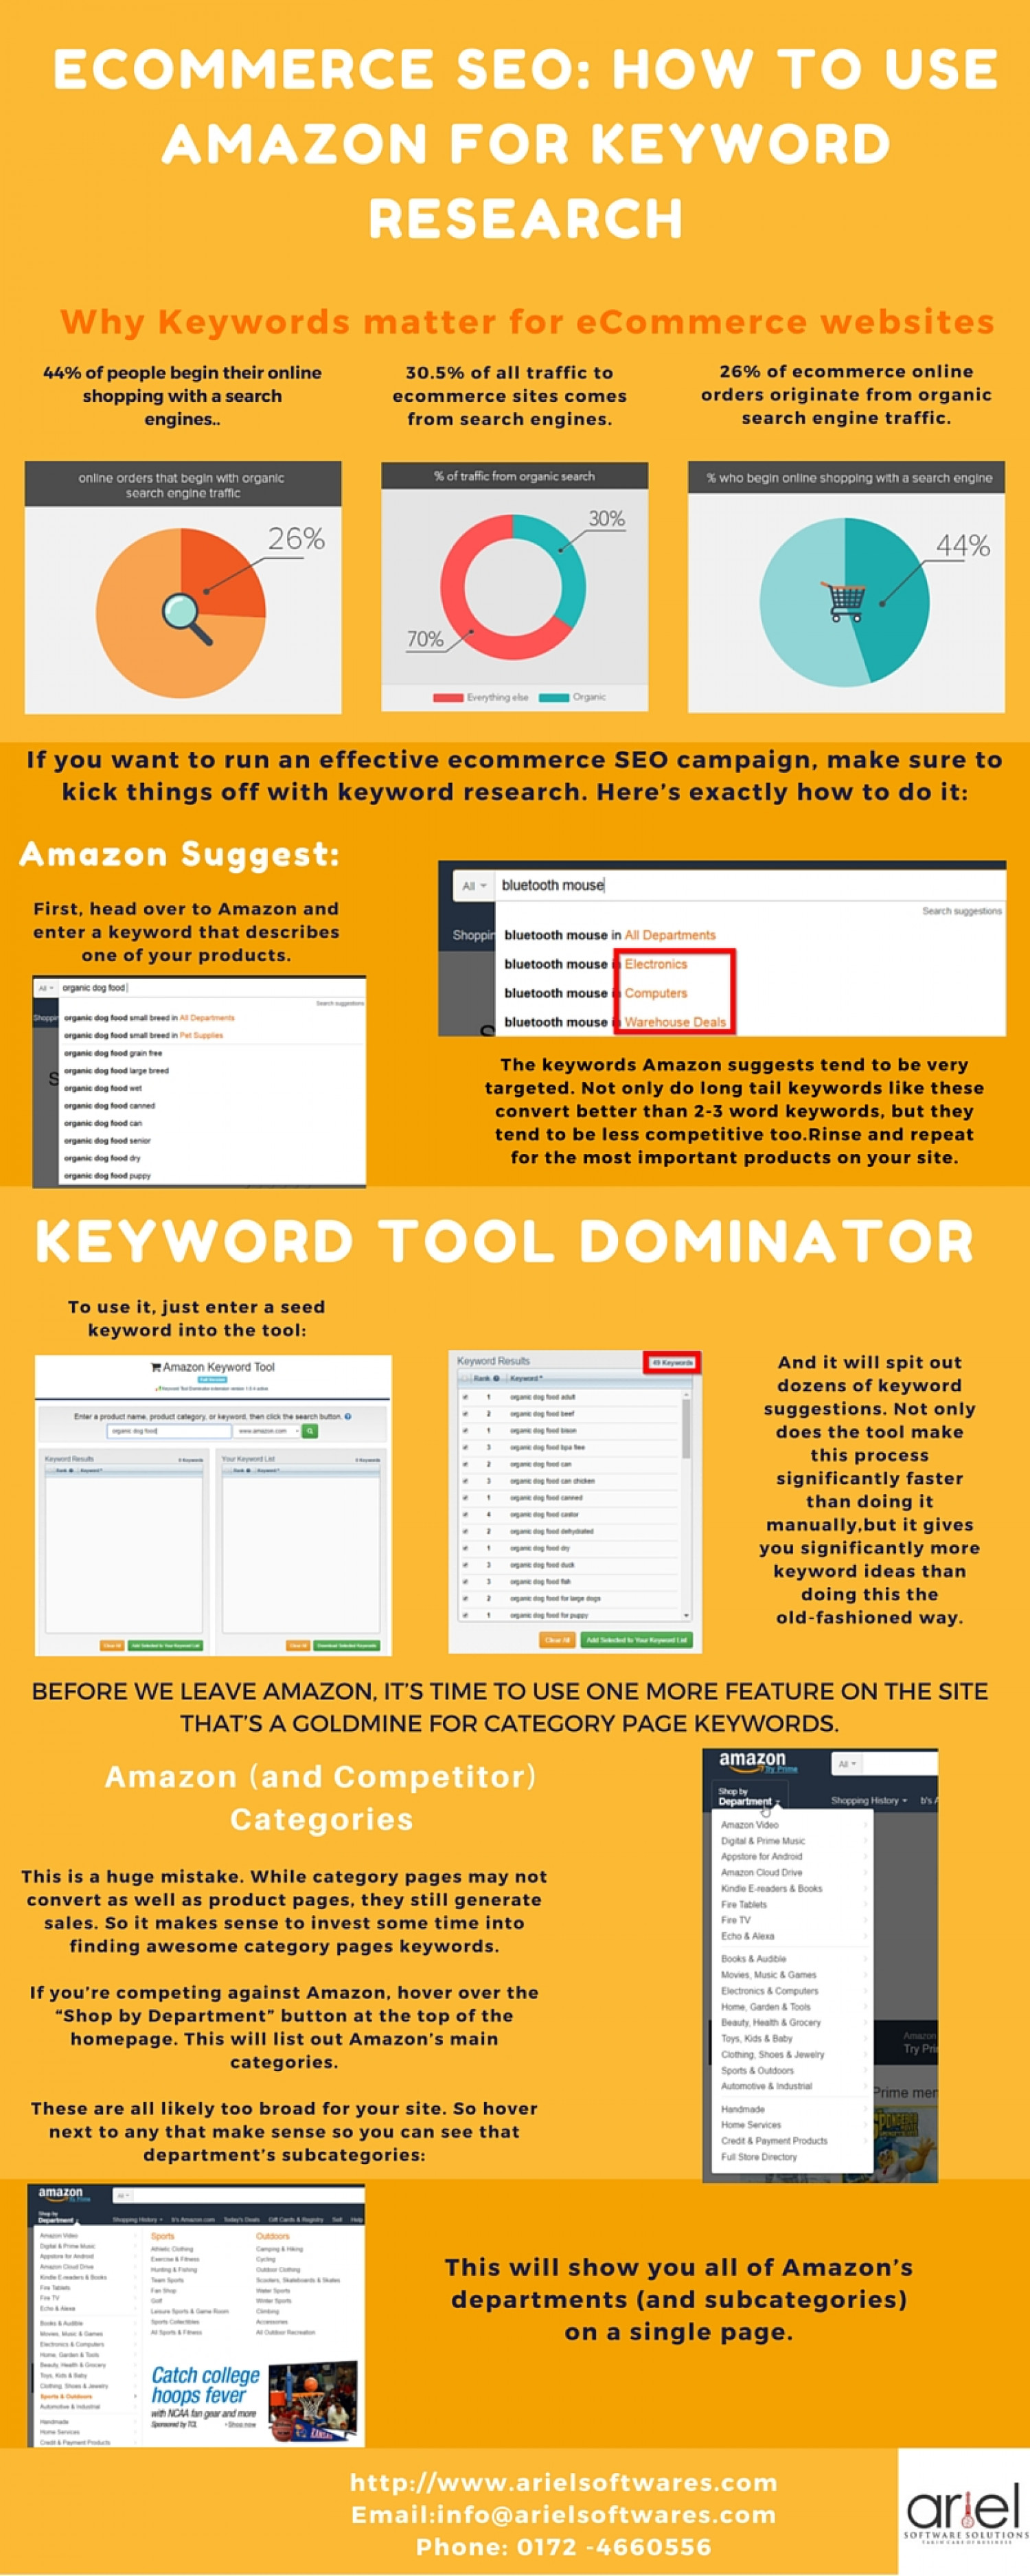 Ecommerce SEO - How to Use Amazon For Keyword Research Infographic